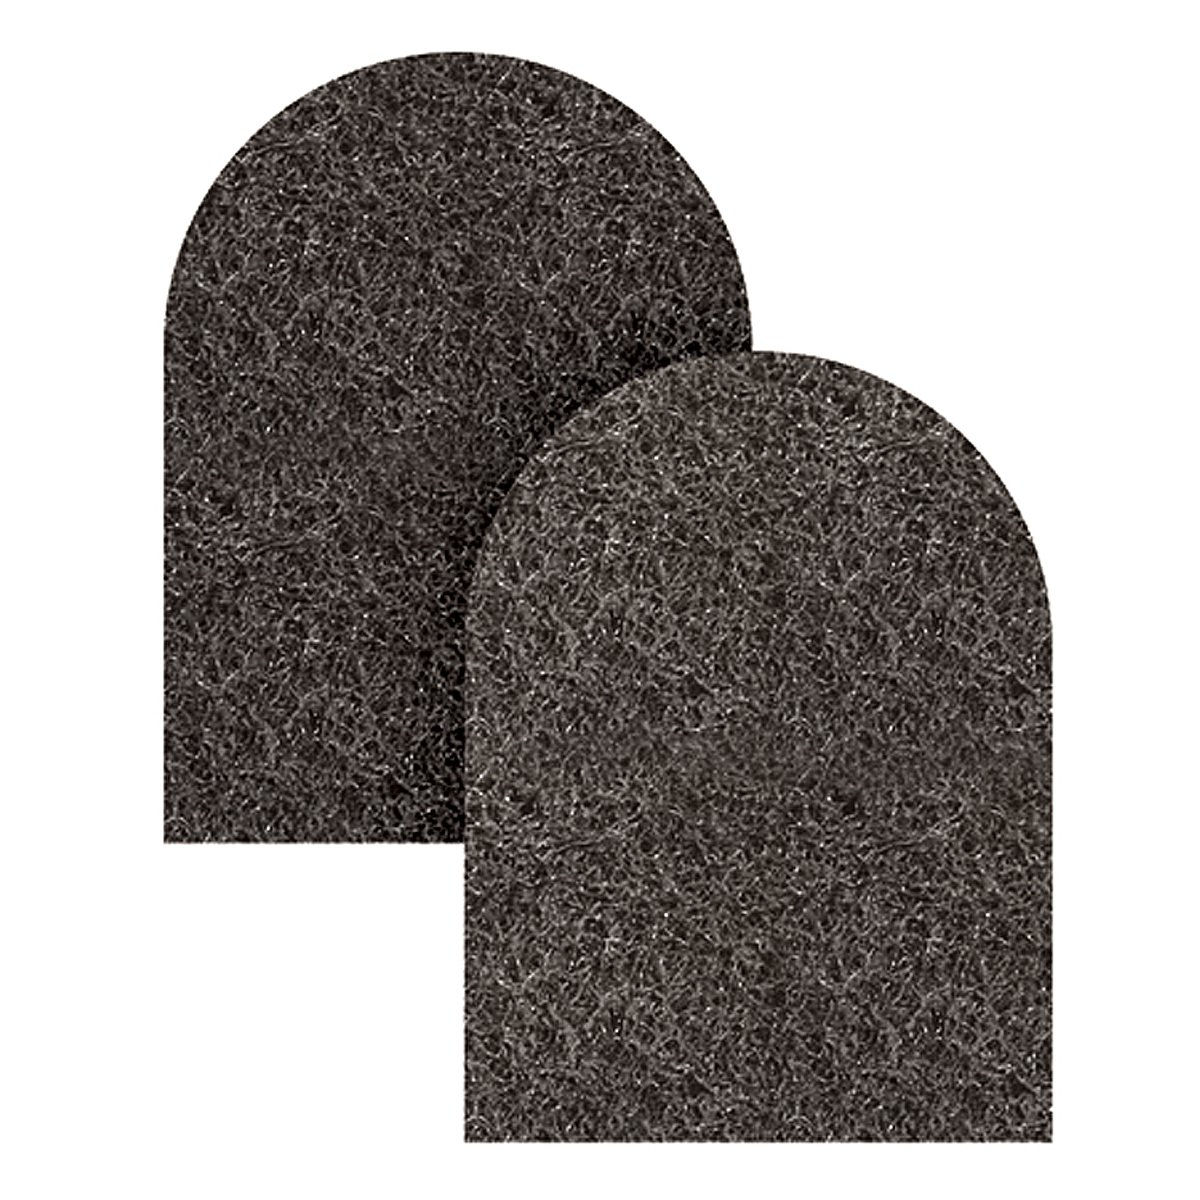 Oggi Replacement Charcoal Filters for Compost Pails # 7319, Set of 2 7323